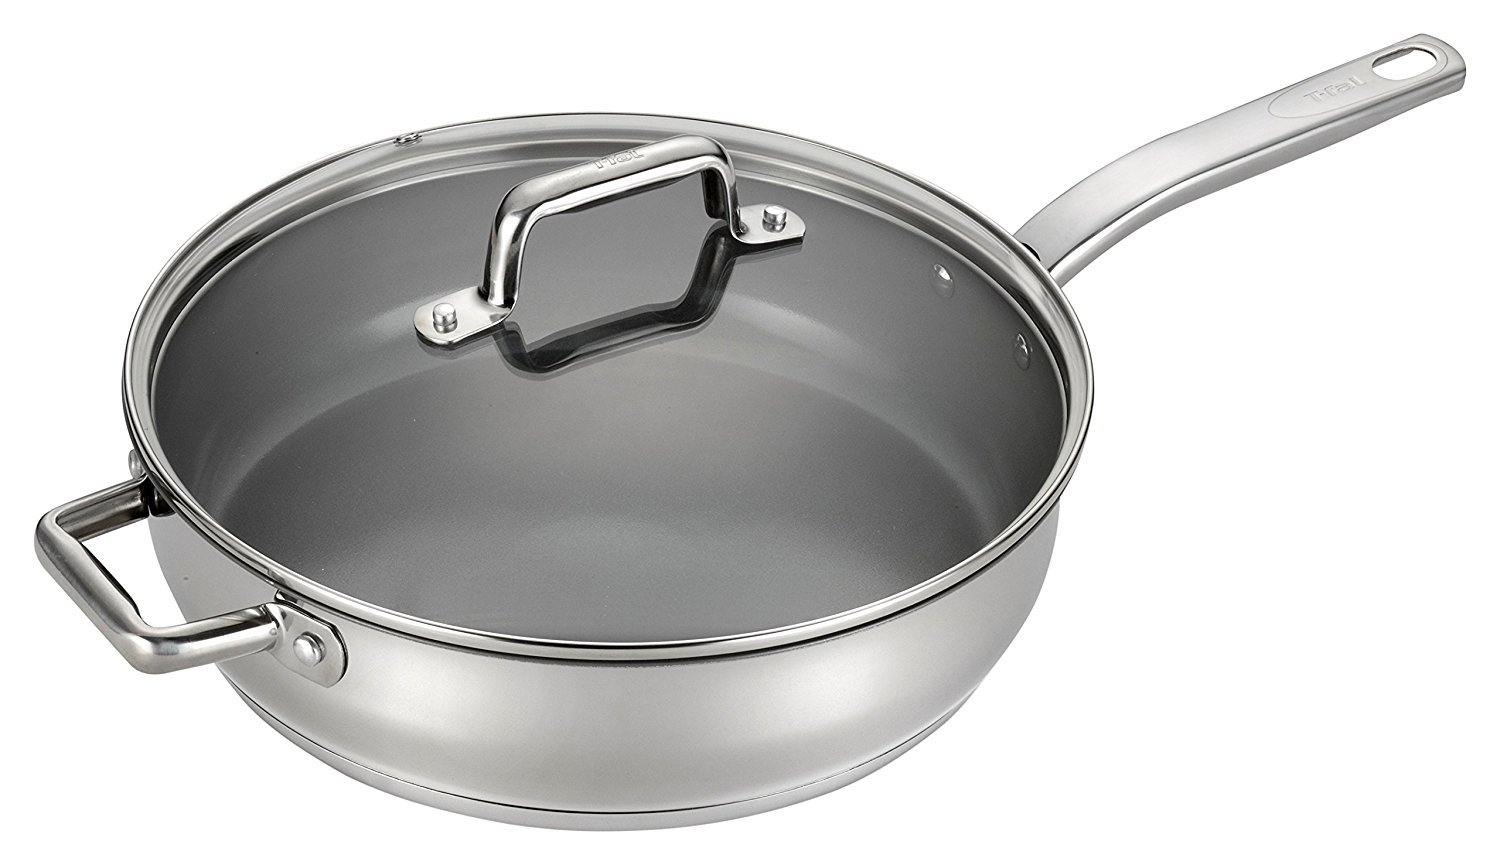 T-fal C71882 Precision Stainless Steel Saute Fry Pan ,5-Quart Review